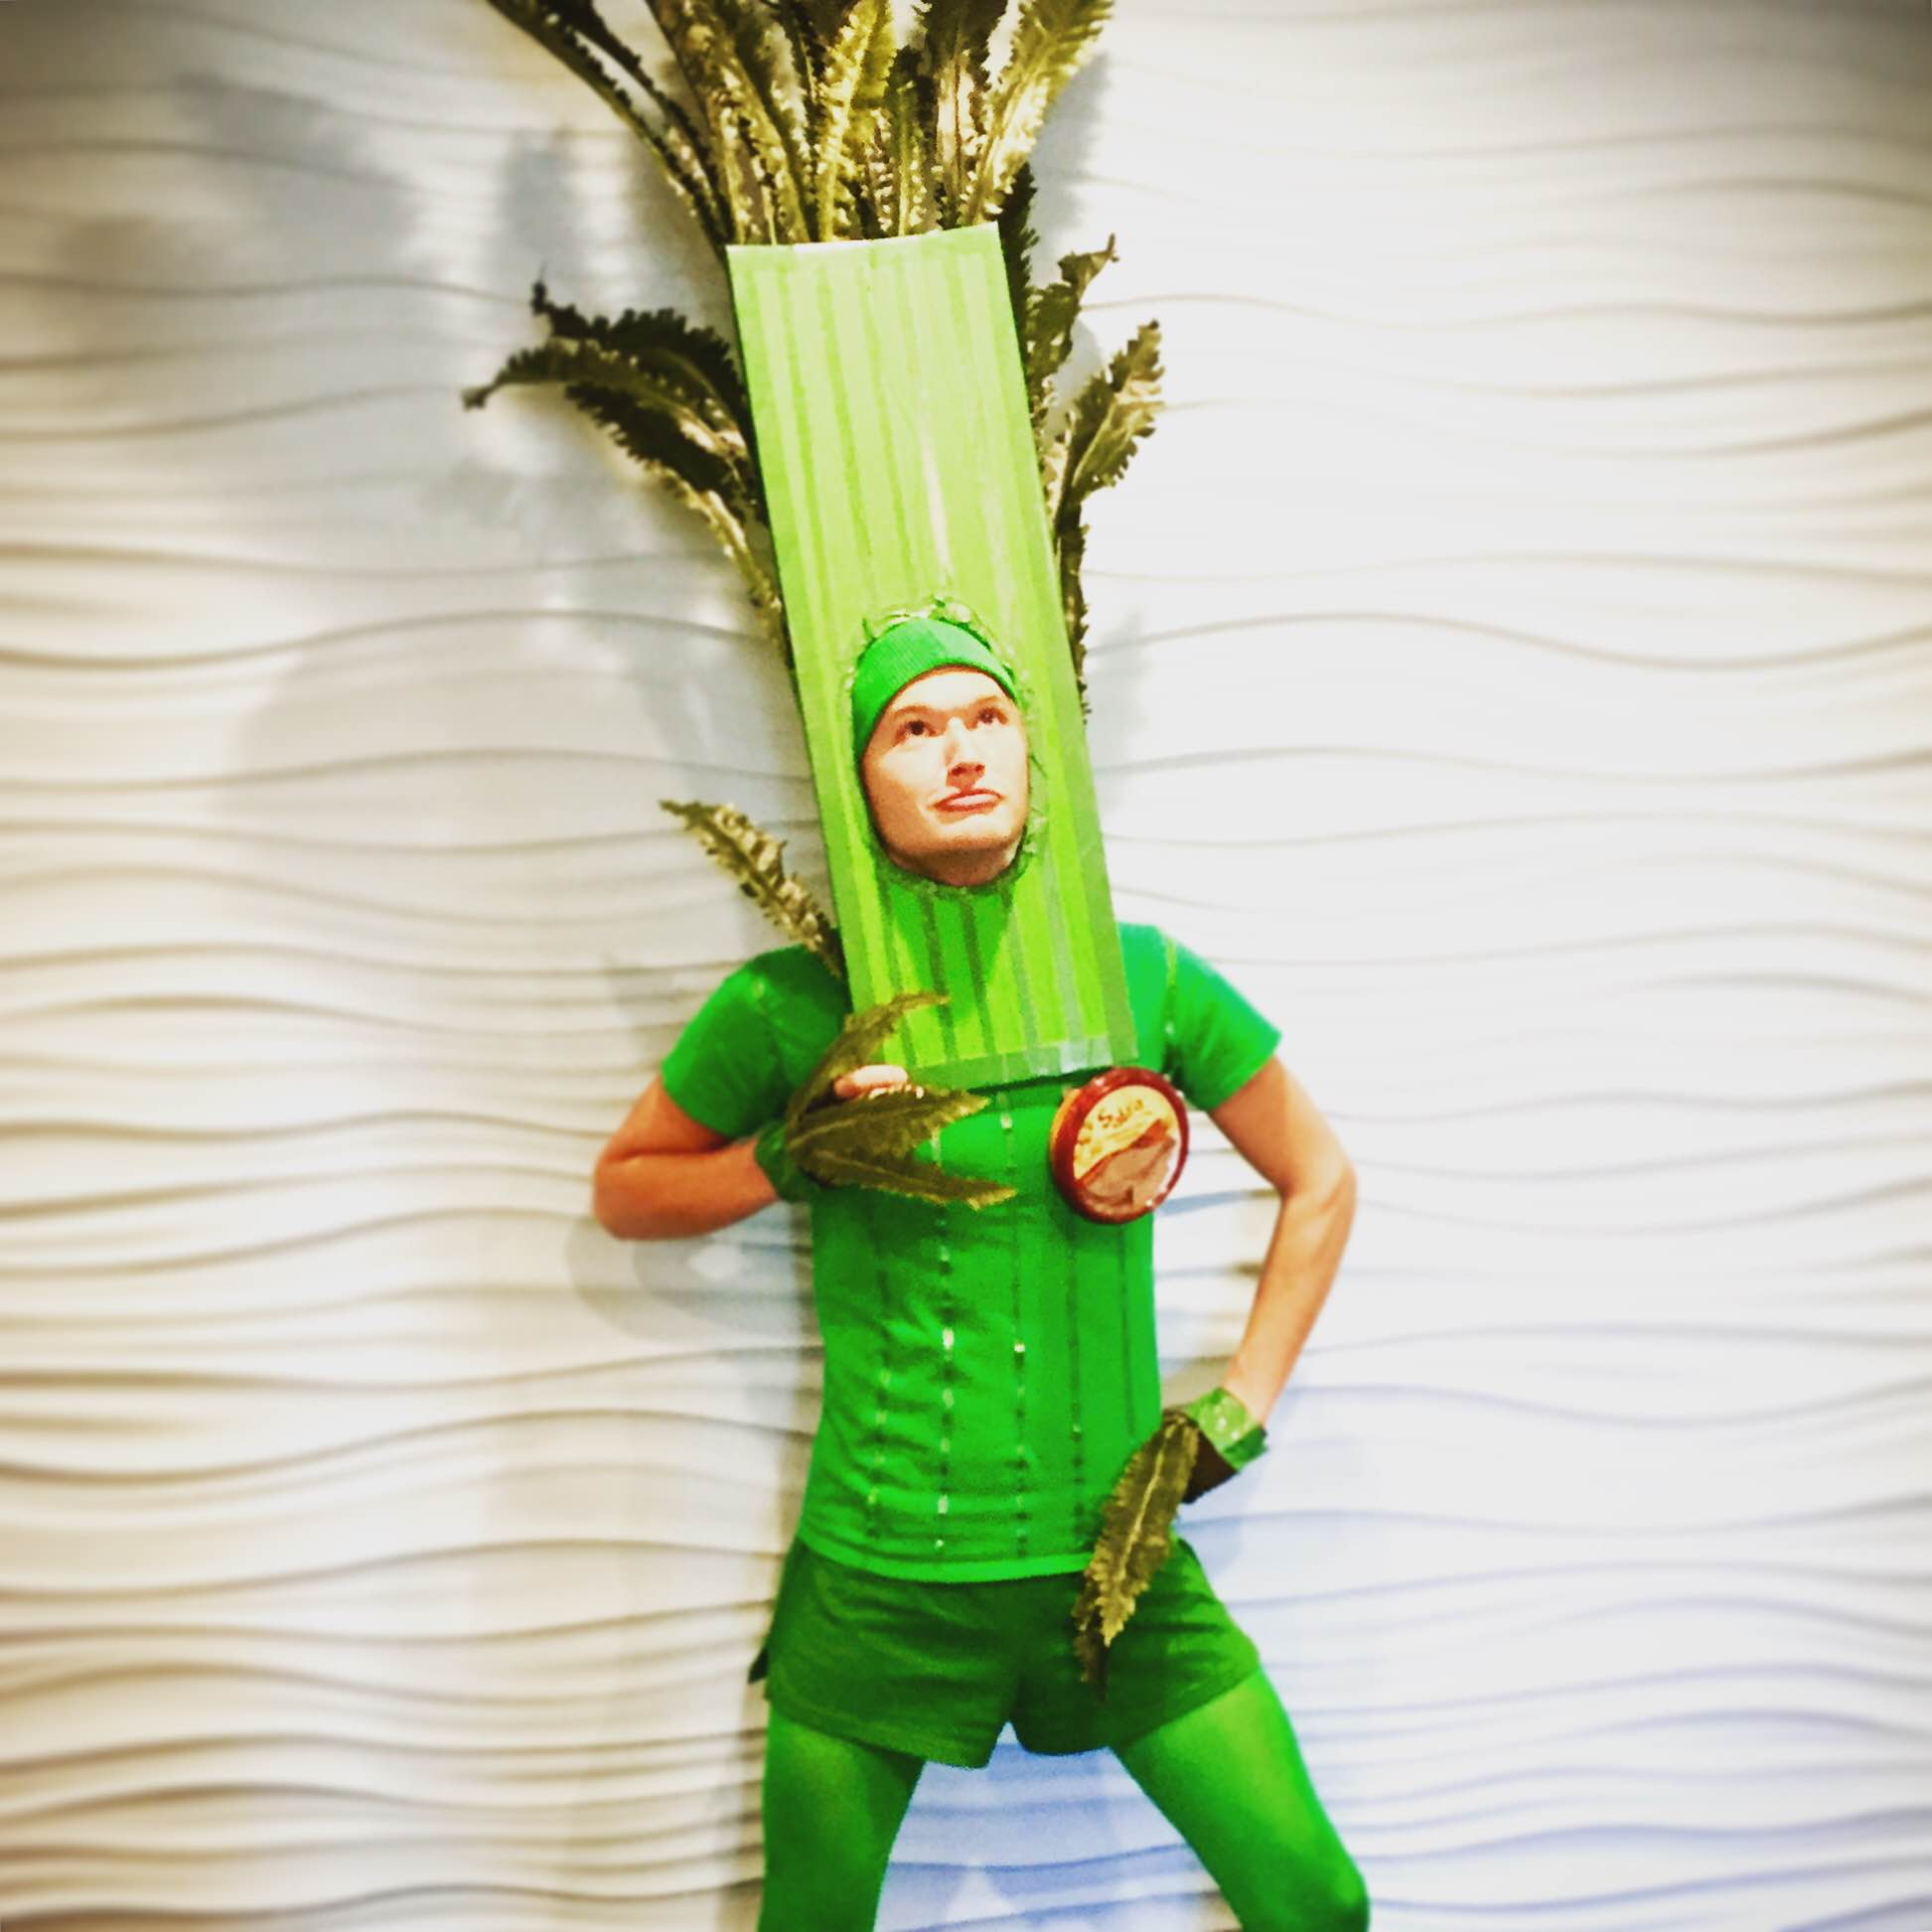 Alan dressed as one of his favorite veggies for Halloween.